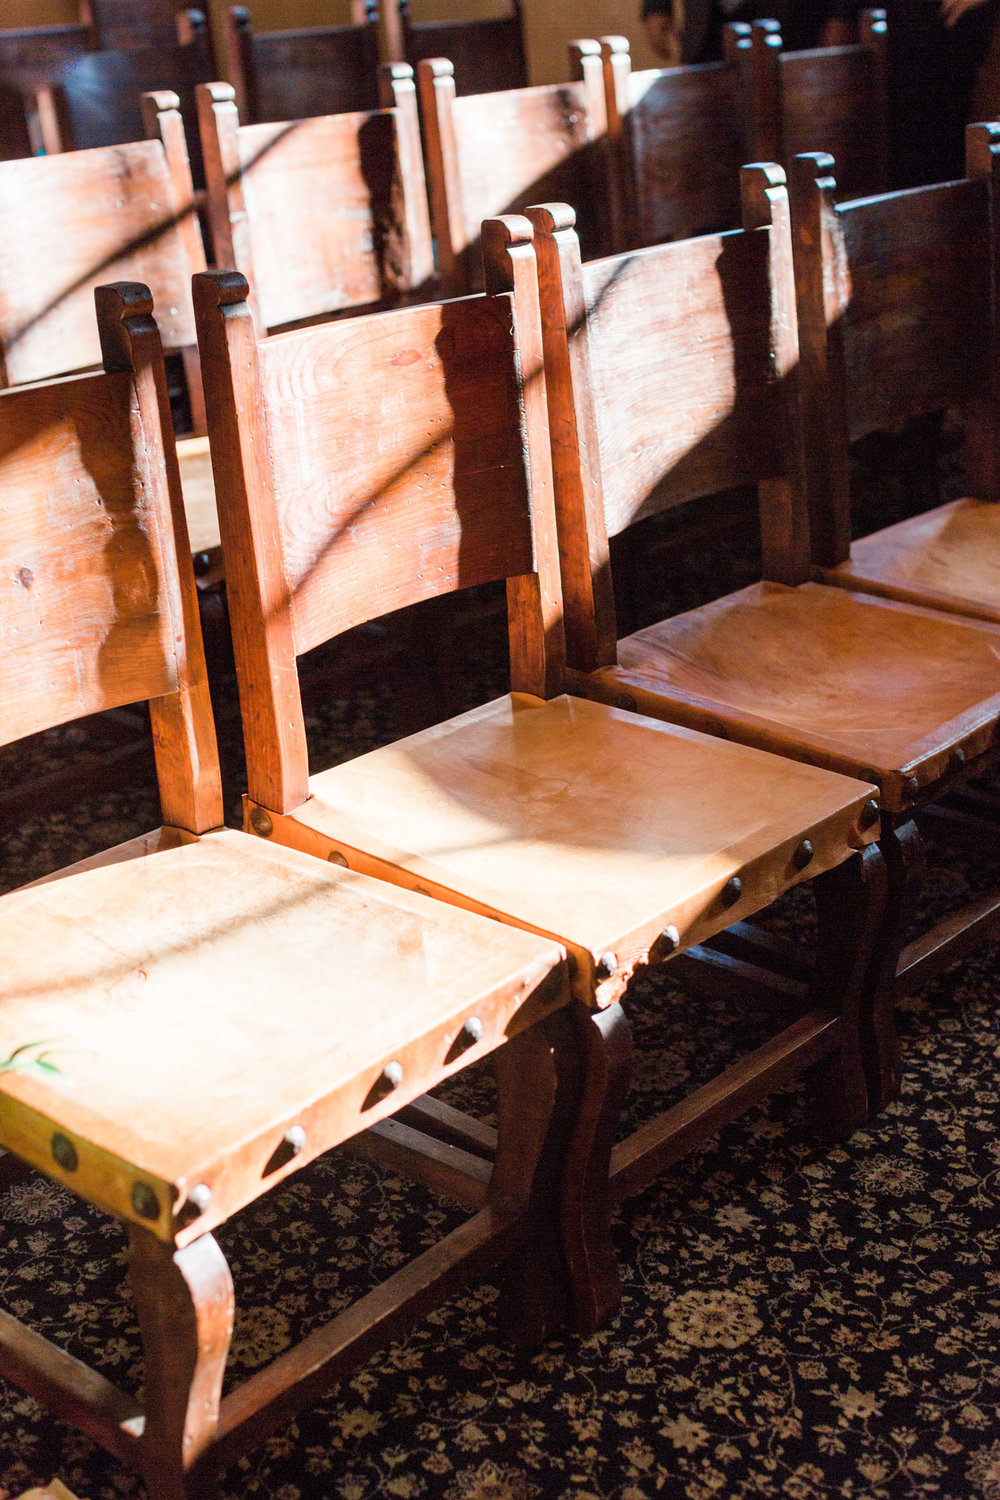 western, leather chairs inside the chapel